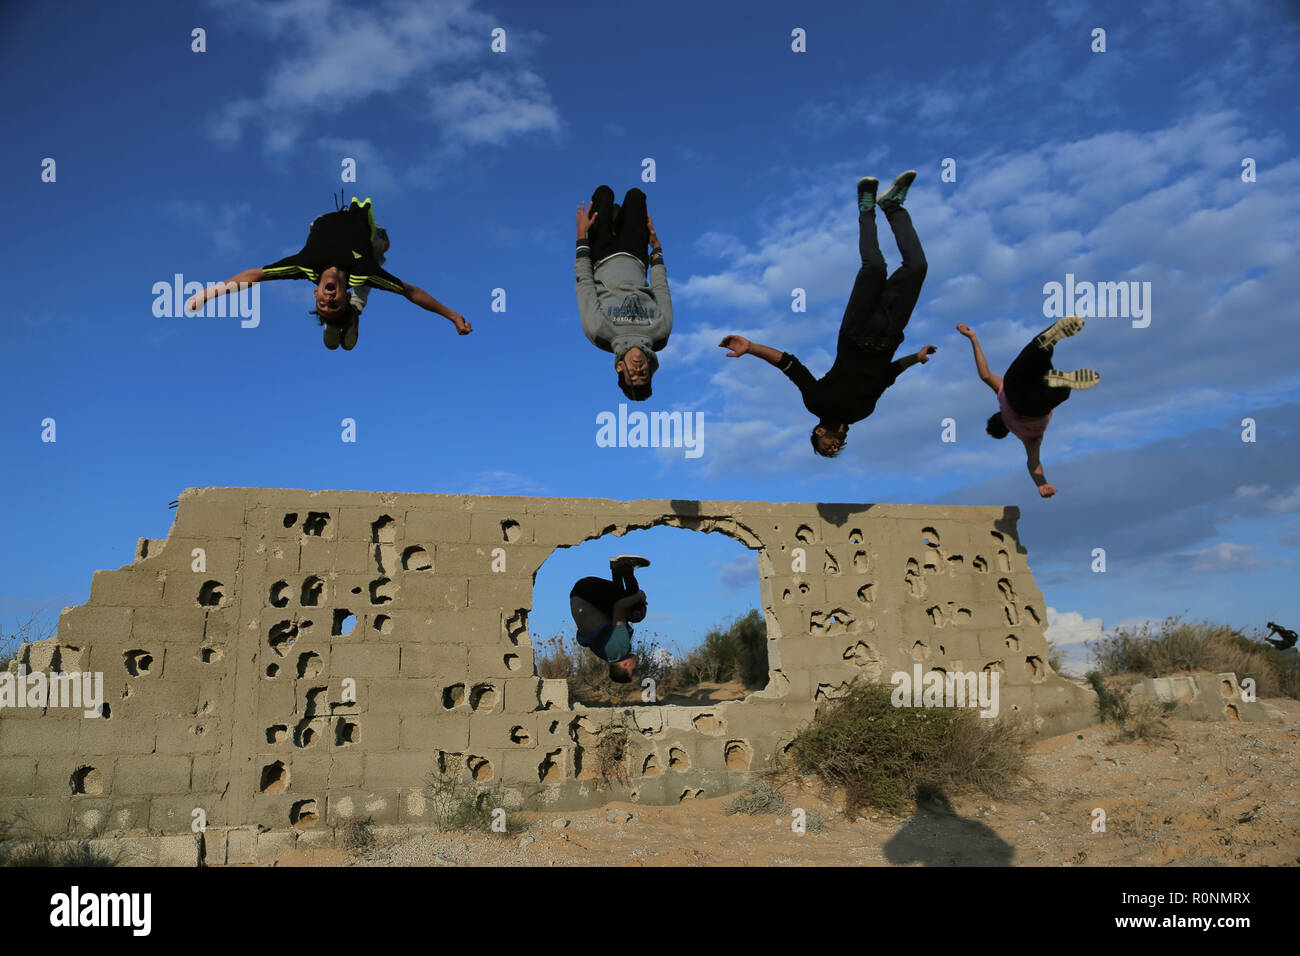 Palestinian youths are seen performing a Parkour jump together during their Parkour practice at the war-torn stones. Gaza has one of the highest youth unemployment rate in the world with over 80% of young people under the age of 30 being unemployed, Parkour is one of the ways for the youth to spend their long afternoons and keep themselves fit. - Stock Image